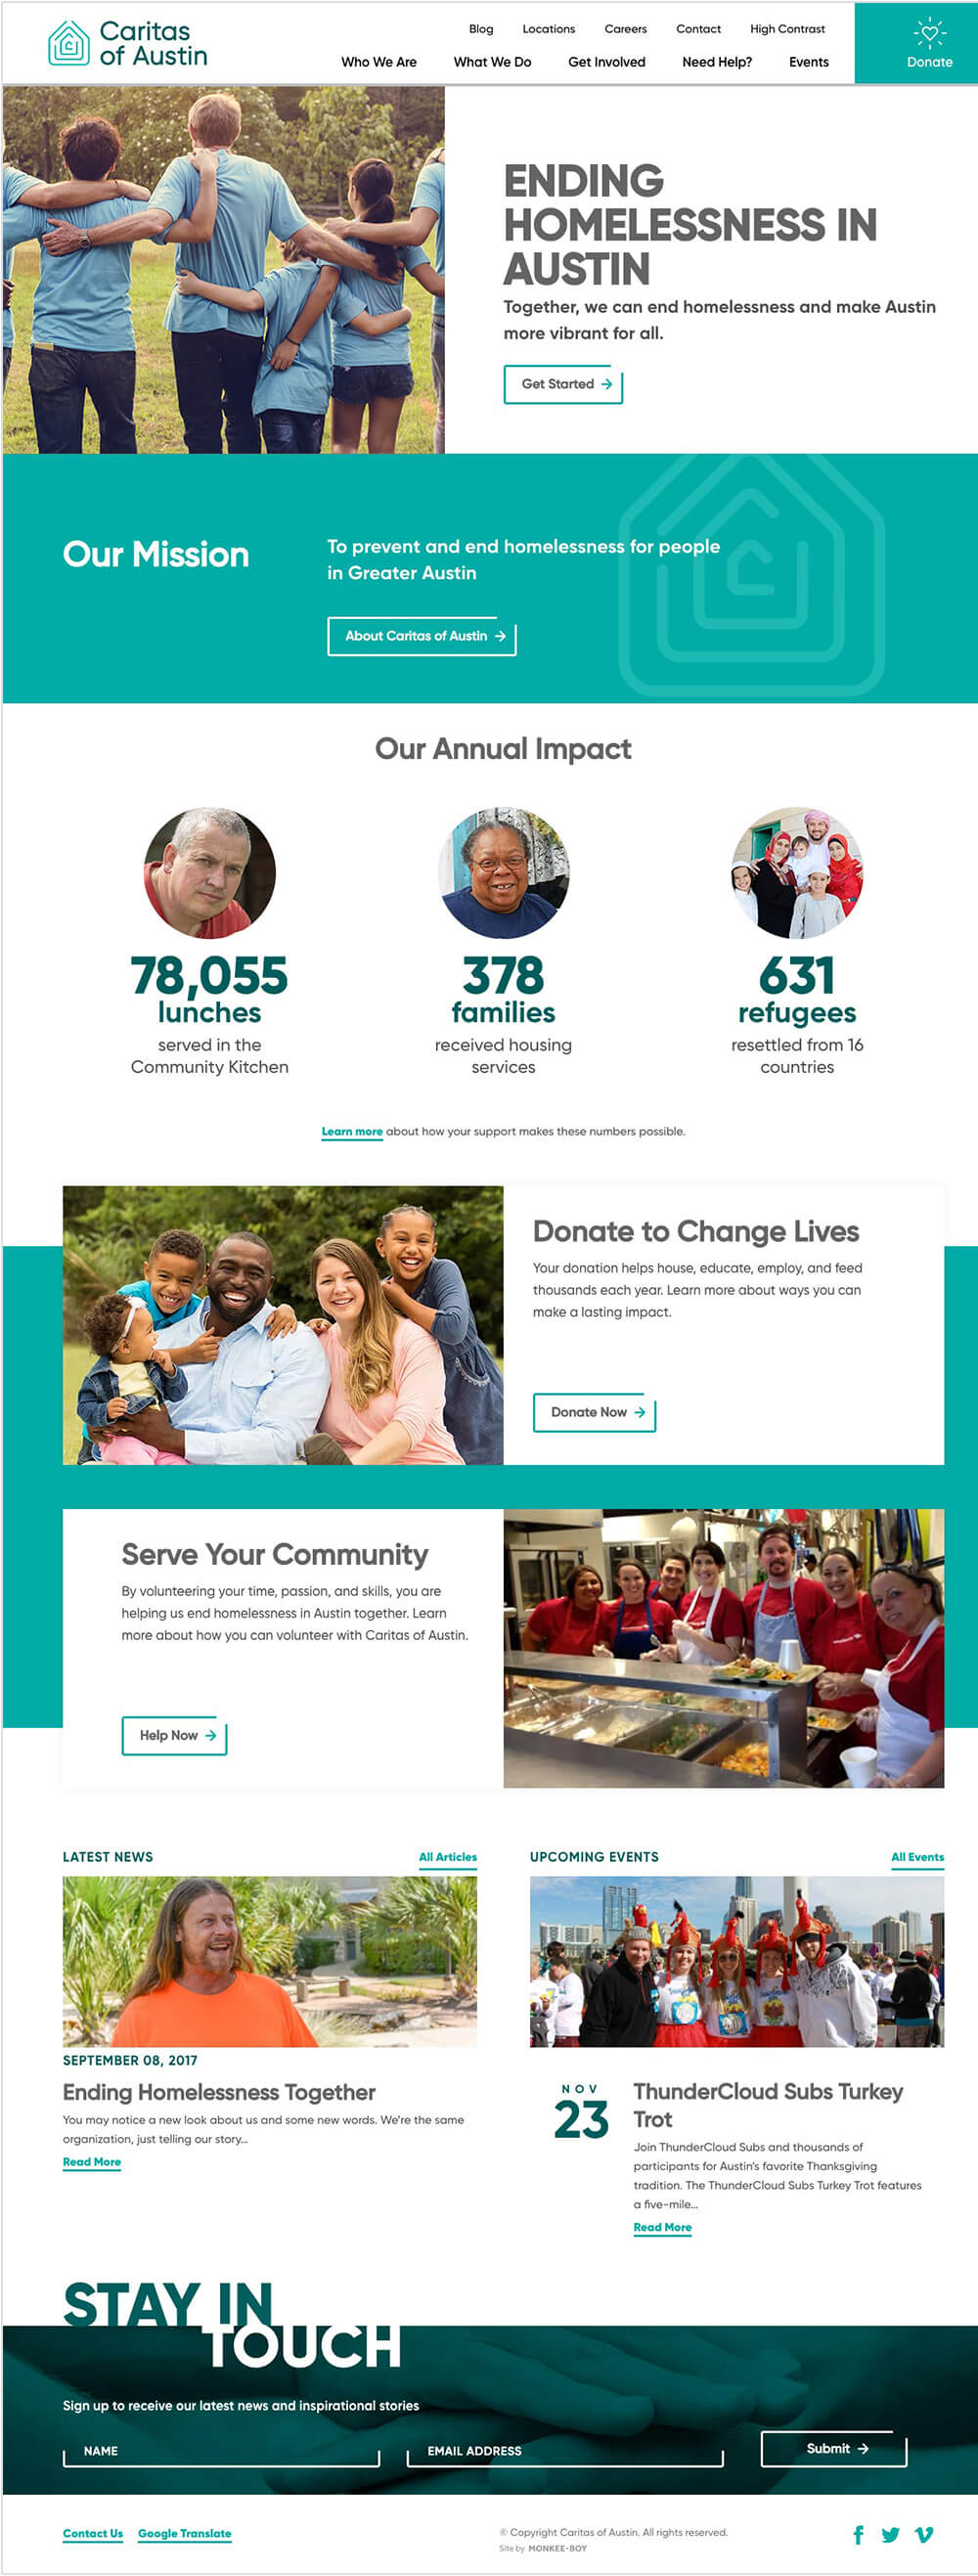 Homepage view of the Caritas of Austin website.